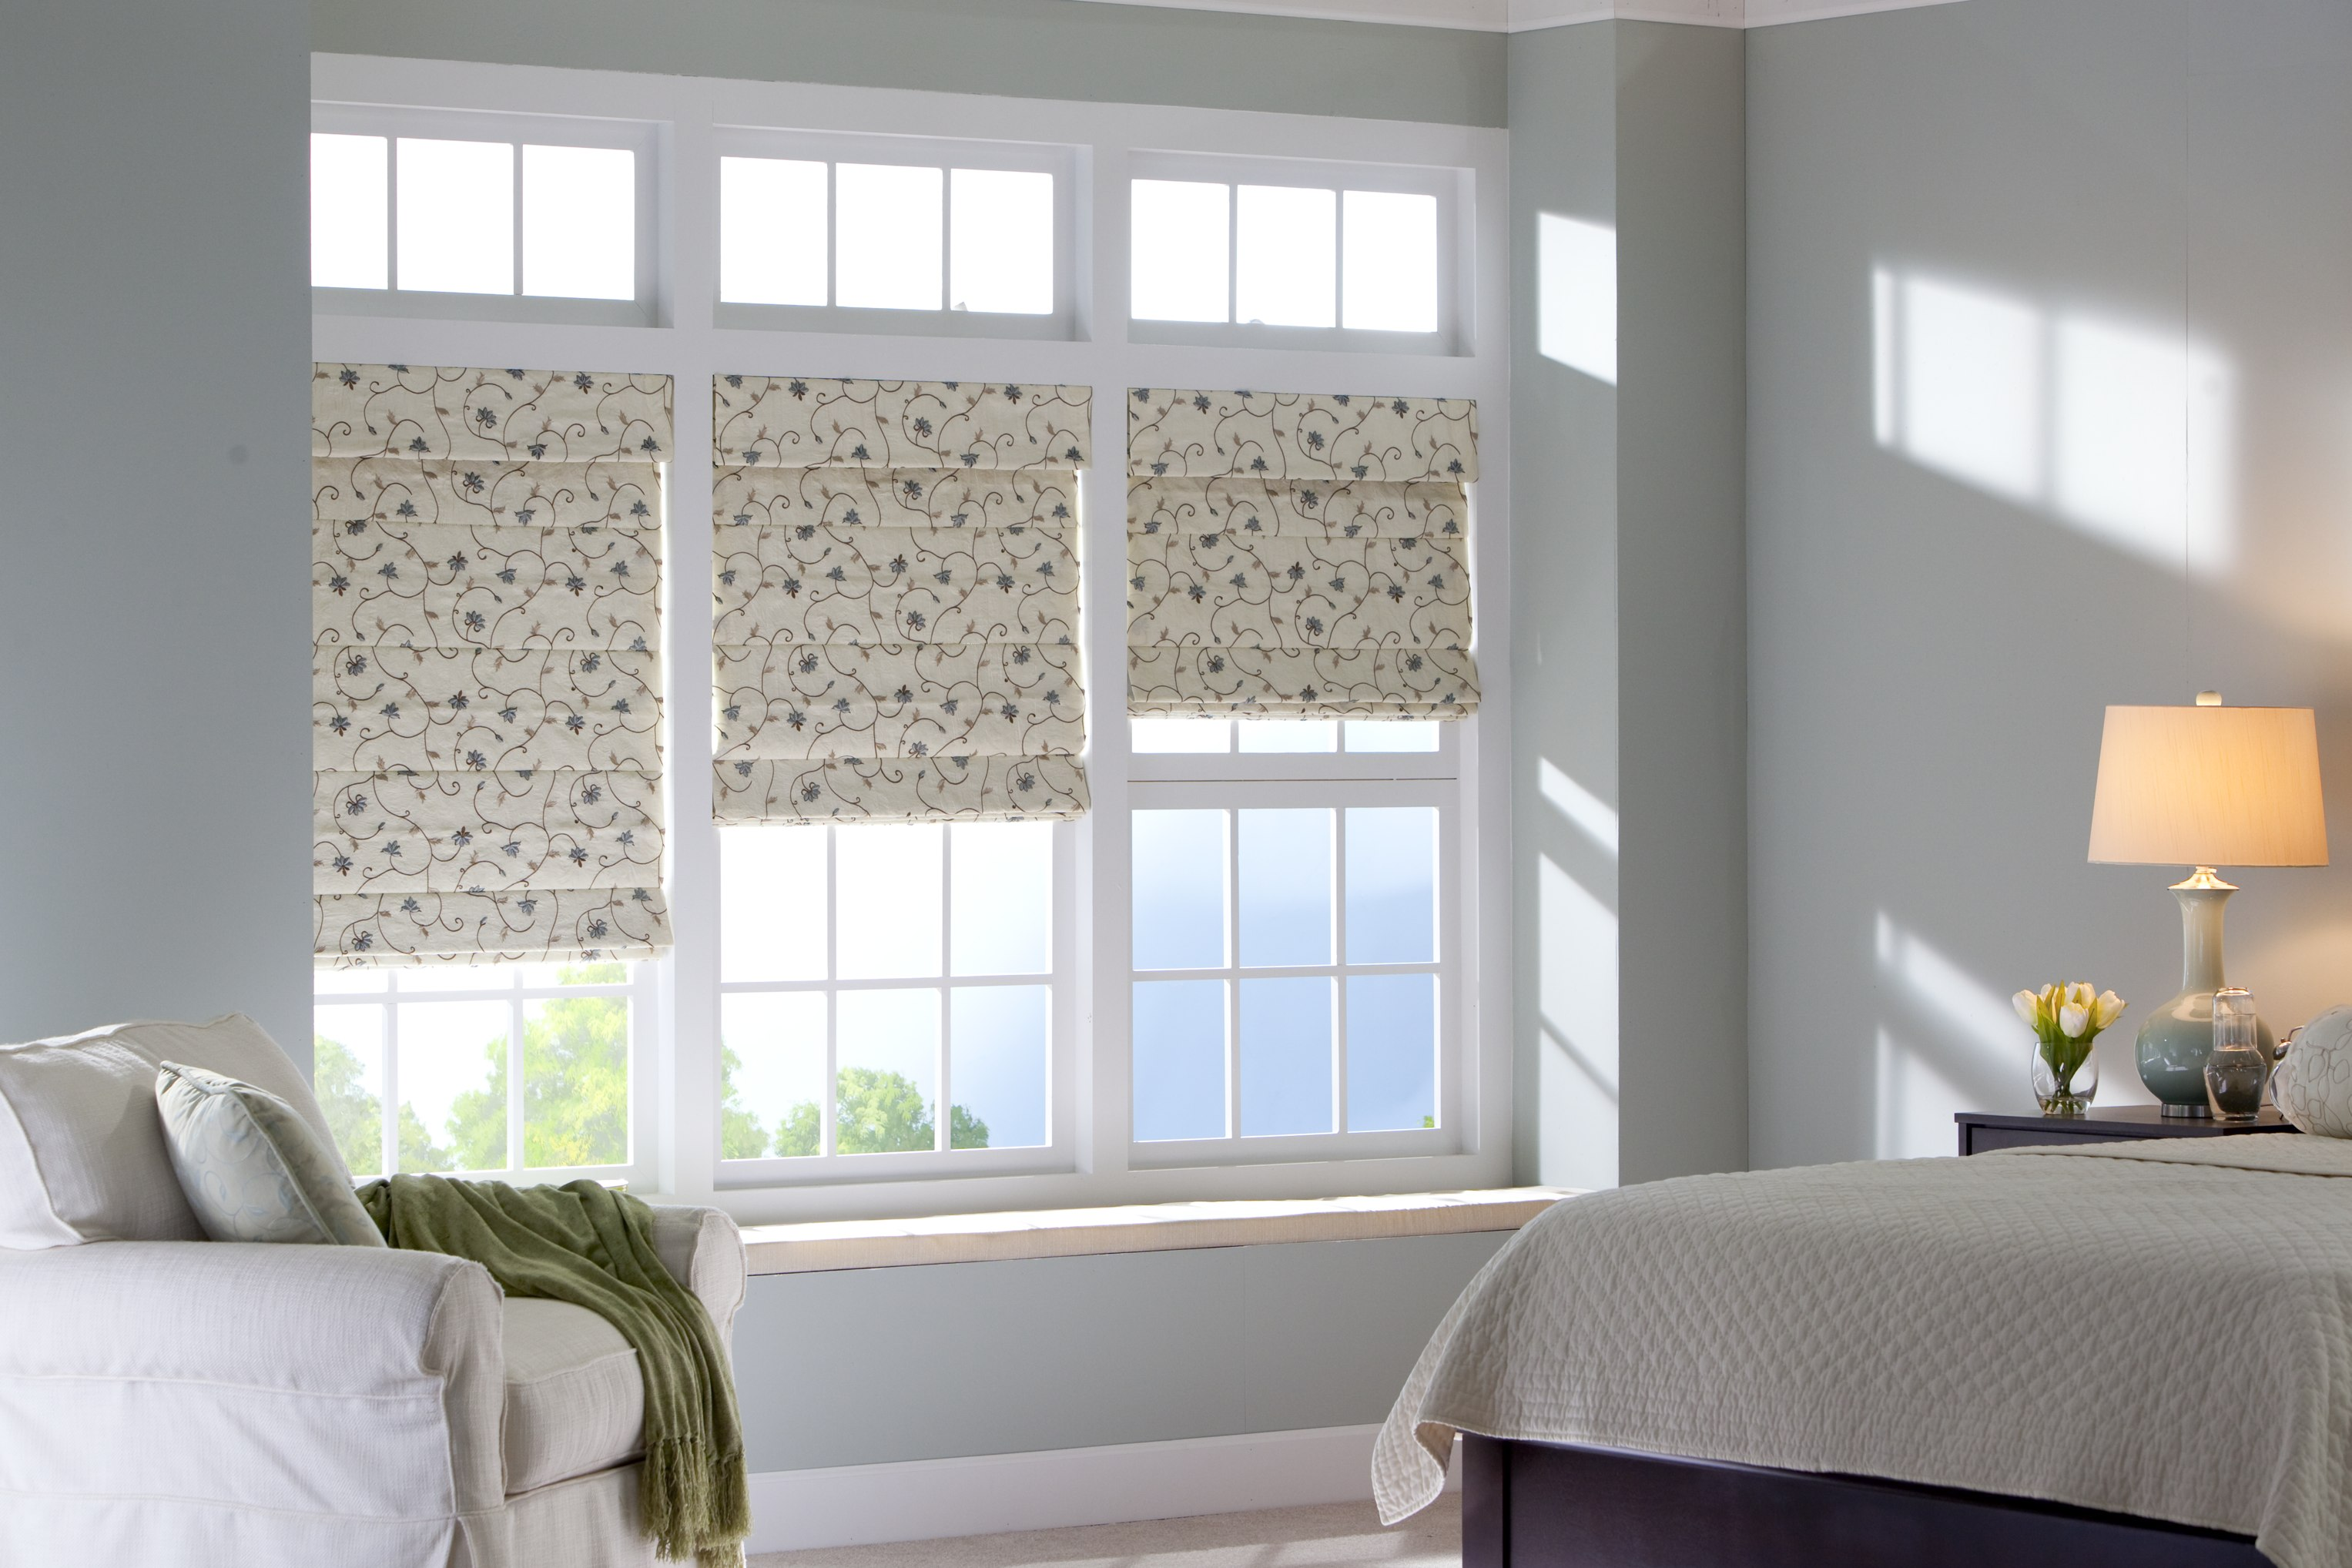 meme your of trend windows awesome curtains pic and tfile uncategorized or bamboo blinds shades ideas